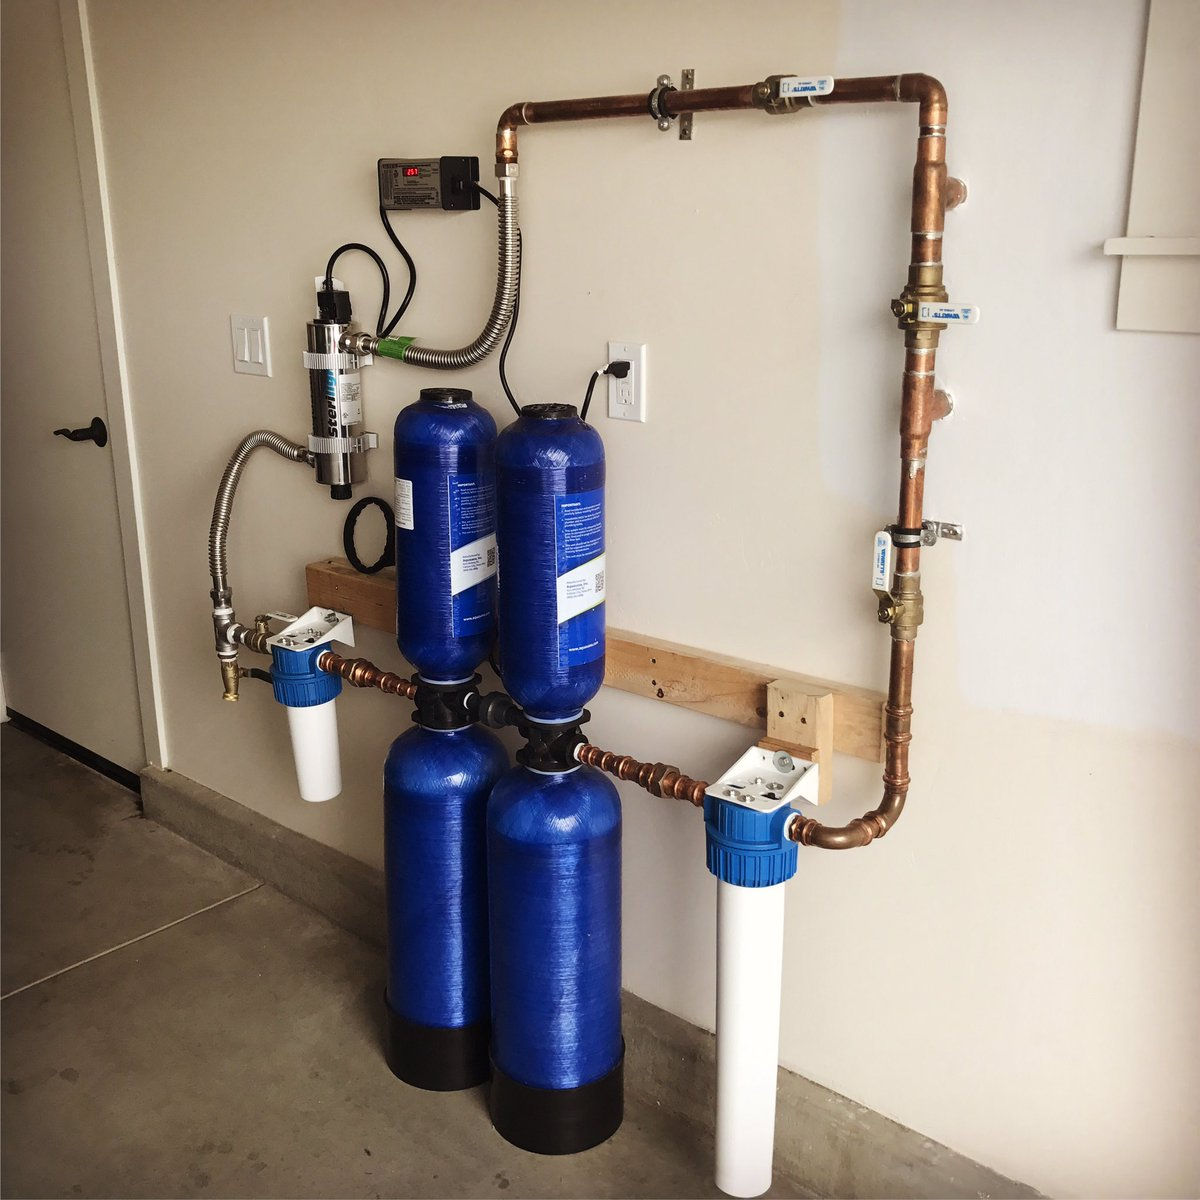 The Plumbing Factory Inc On Twitter Installed An Aquasana Whole House Filtration System And Water Softener W Uv Light Filter For Extra Protection